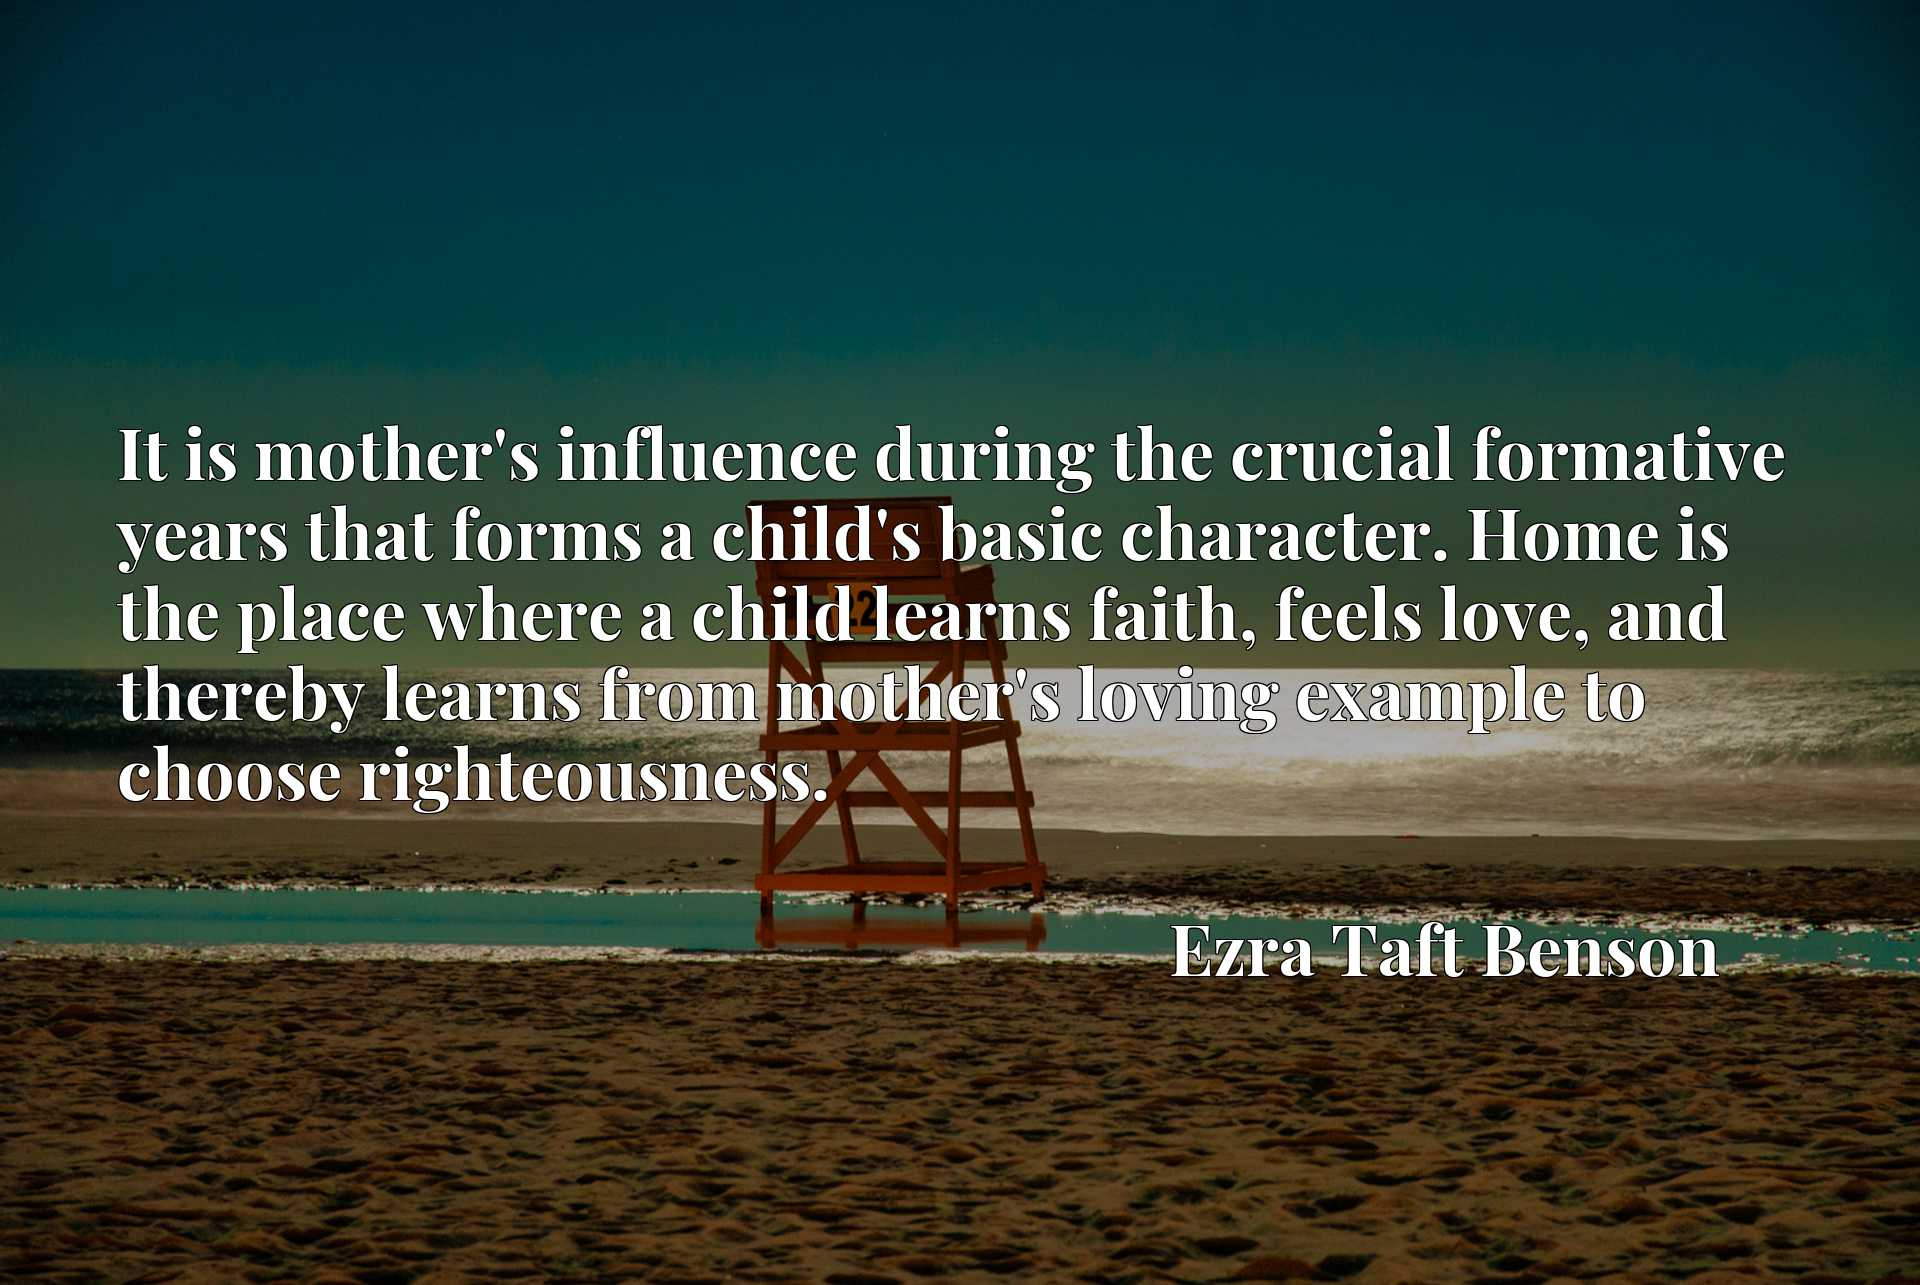 It is mother's influence during the crucial formative years that forms a child's basic character. Home is the place where a child learns faith, feels love, and thereby learns from mother's loving example to choose righteousness.